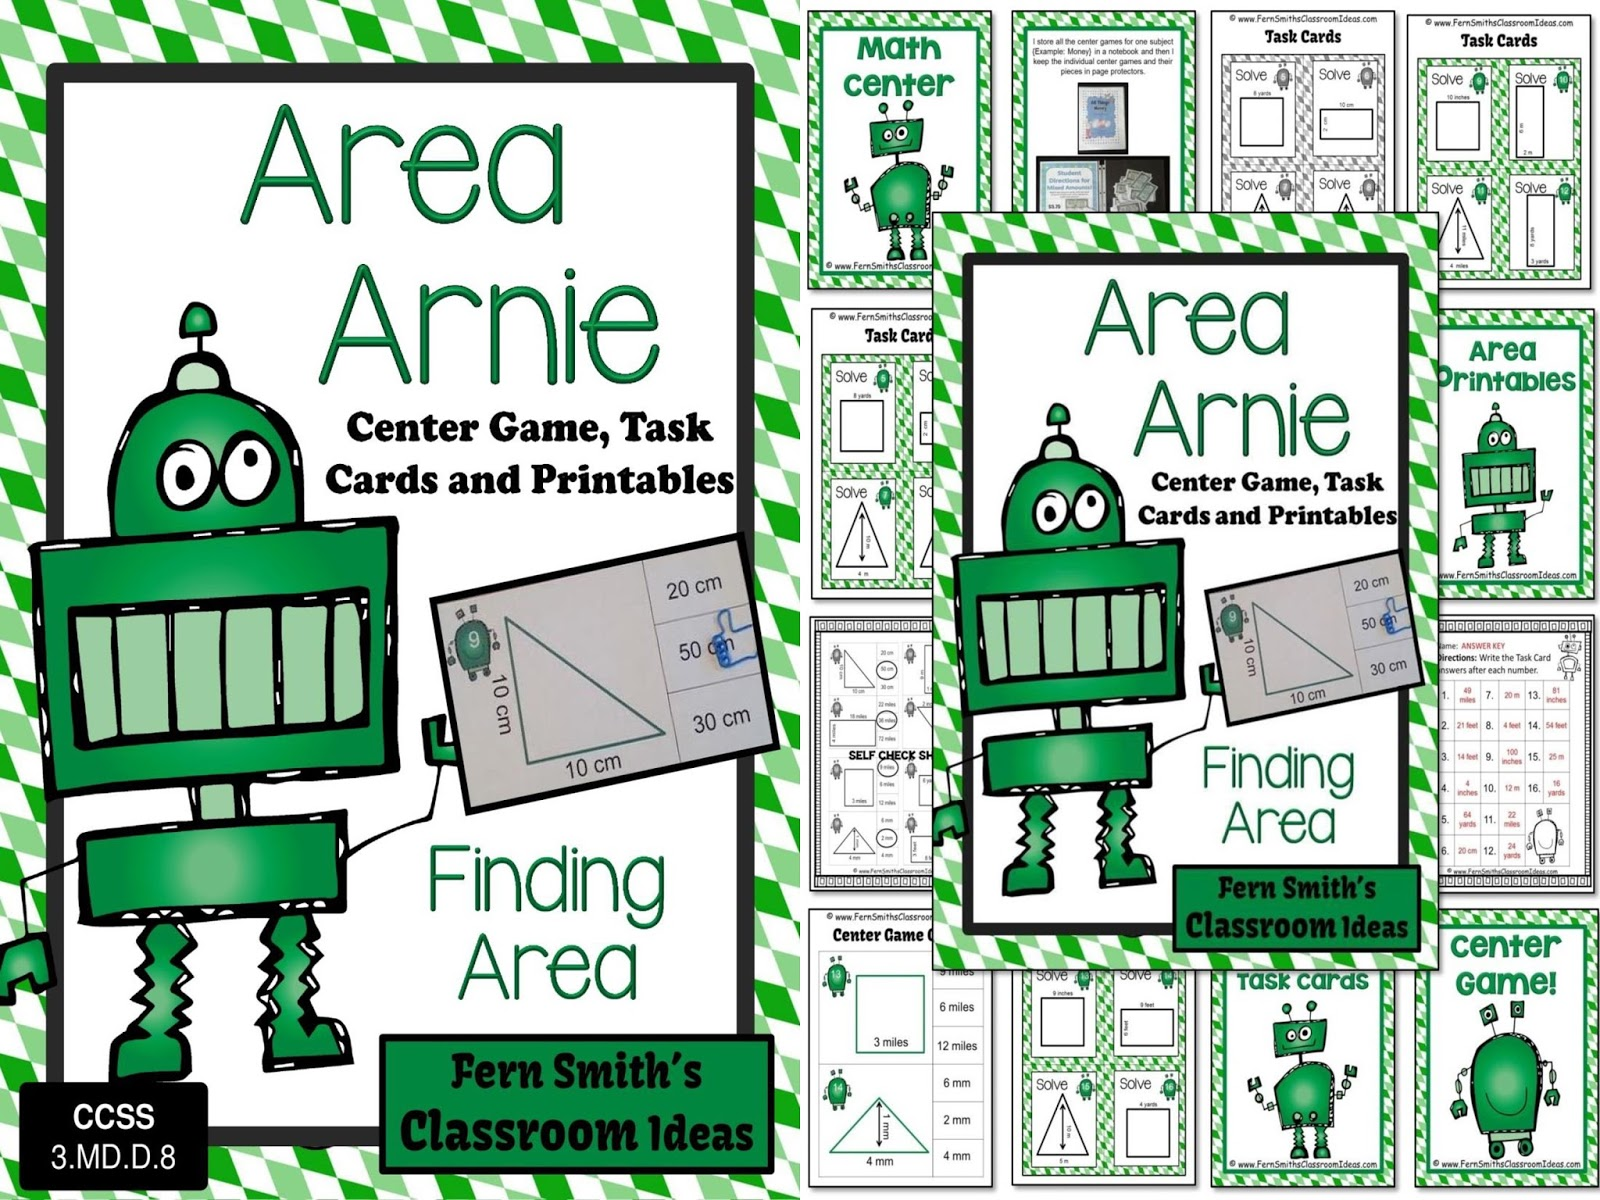 Area Arnie Mega Math Pack - Finding Area Printables, Center Game and Task Cards